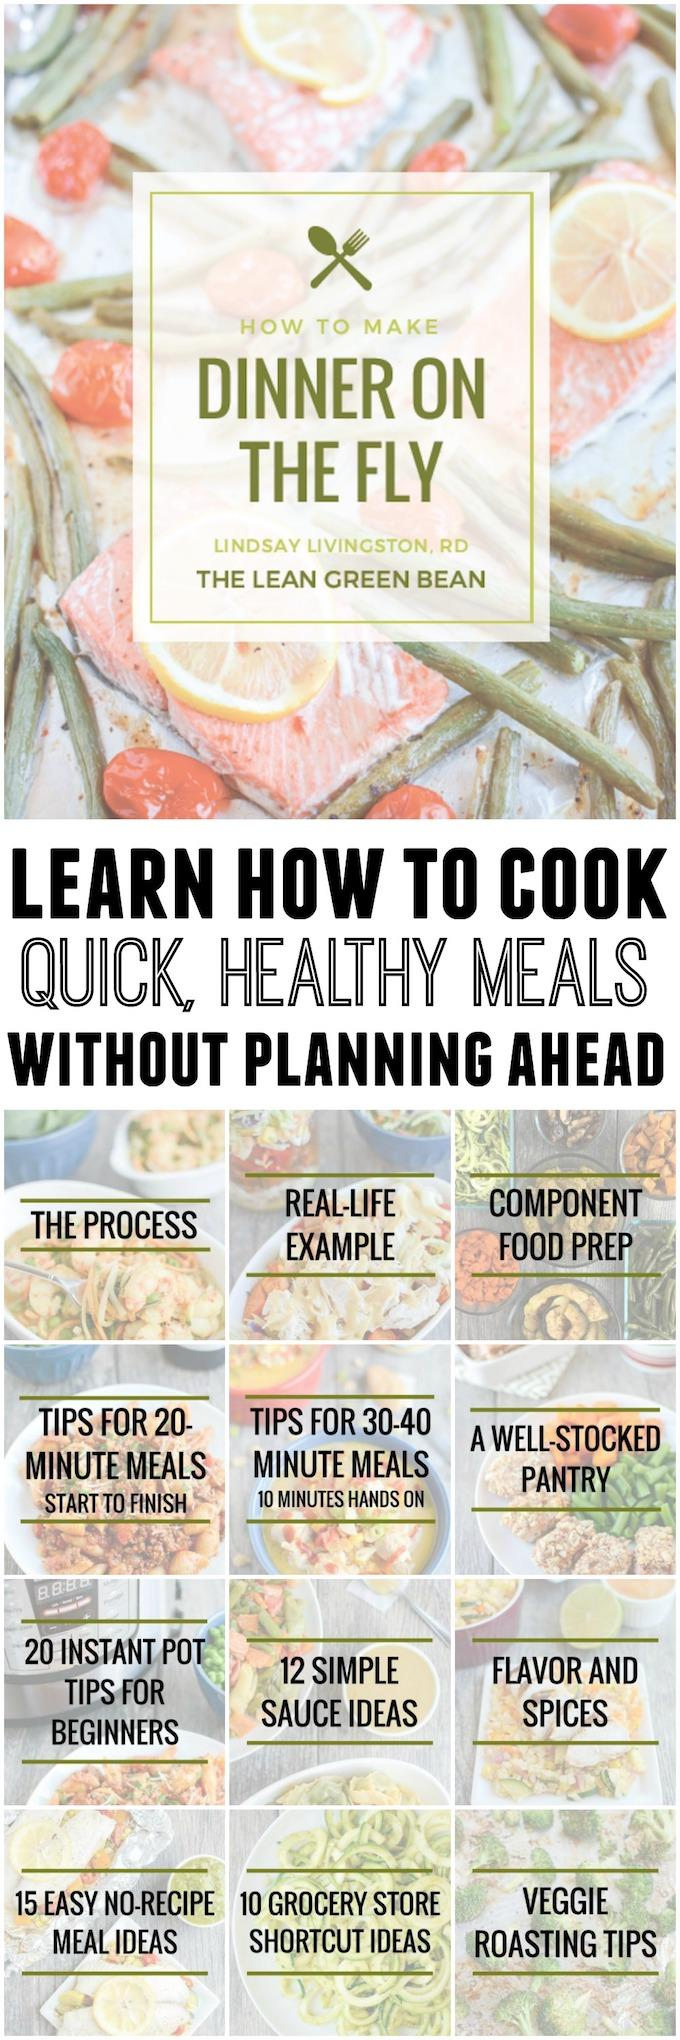 Ready to learn how to cook dinner on the fly? In this ebook, a Registered Dietitian and mom of two willteach you a simple 4-step process to put together quick, healthy dinners with very little prior planning.